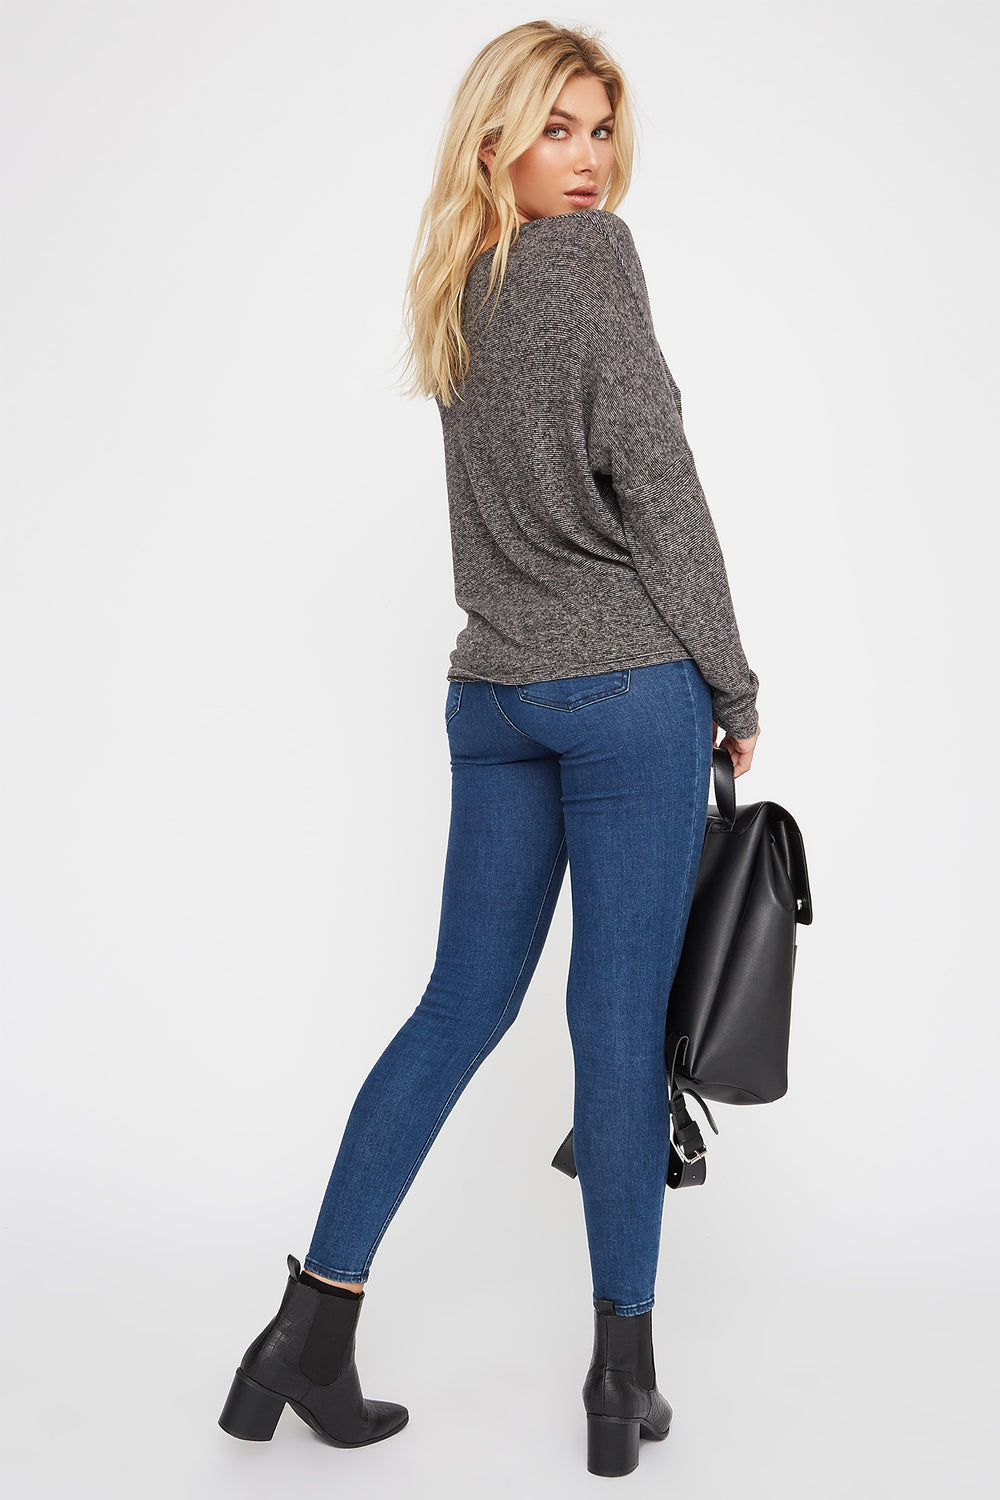 Soft Tie Dolman Long Sleeve Charcoal